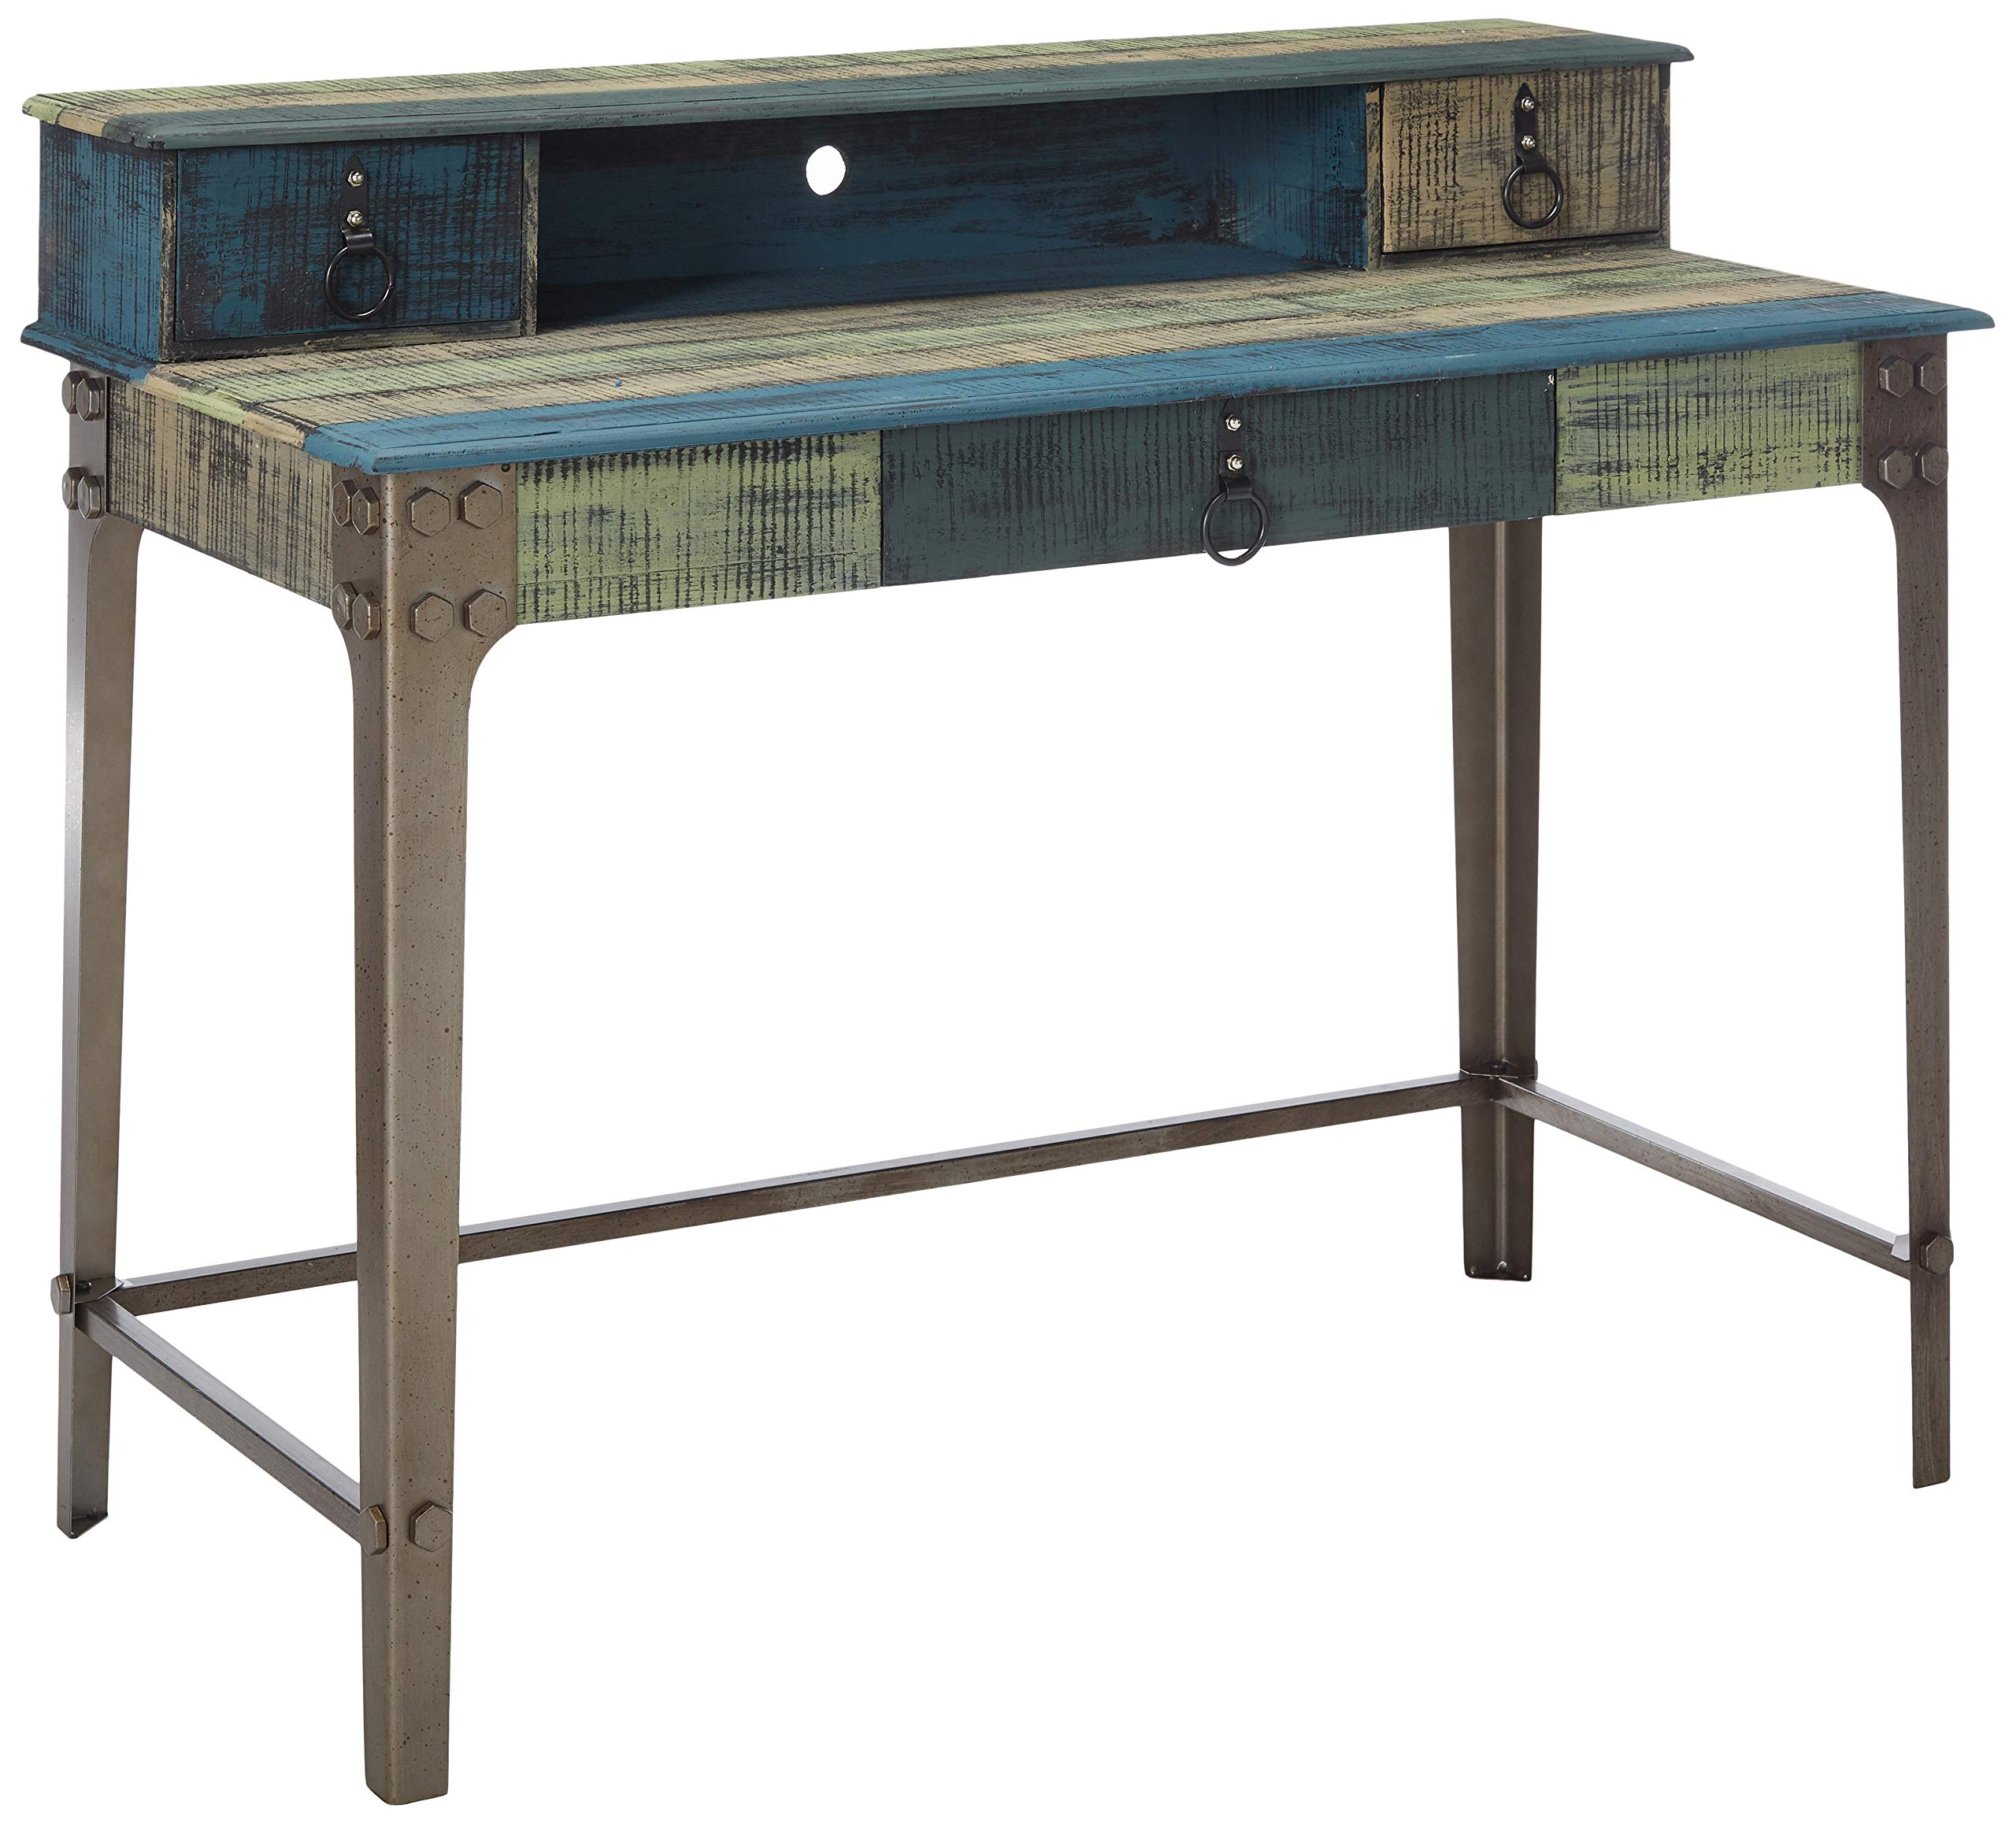 Powell's Furniture 114-238 Calypso Desk, Wood with Multi Color Accents, by Powell's Furniture